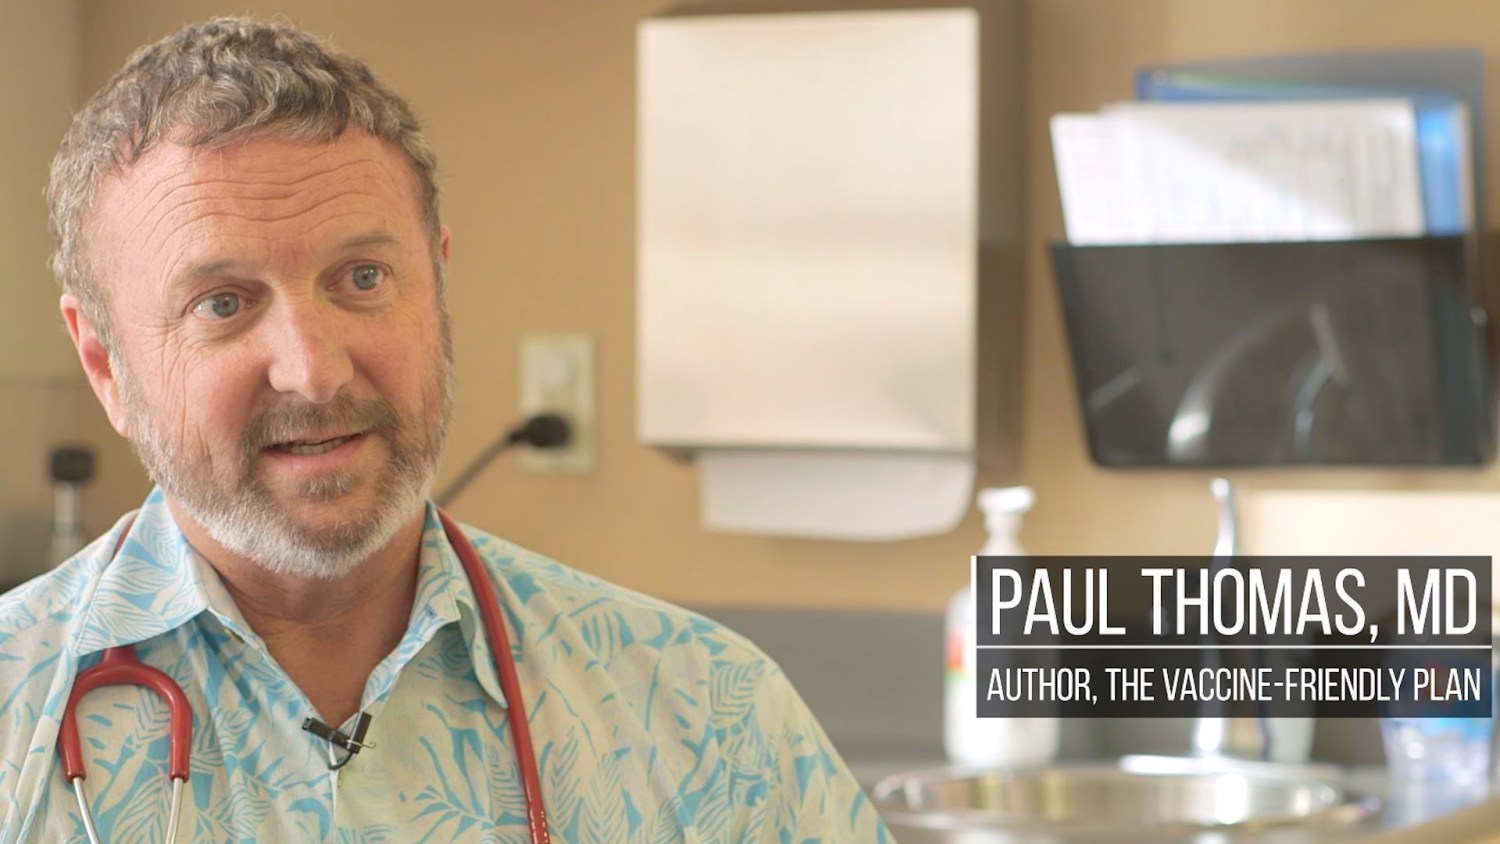 Dr Paul Thomas A Rising Star In The Antivaccine Movement